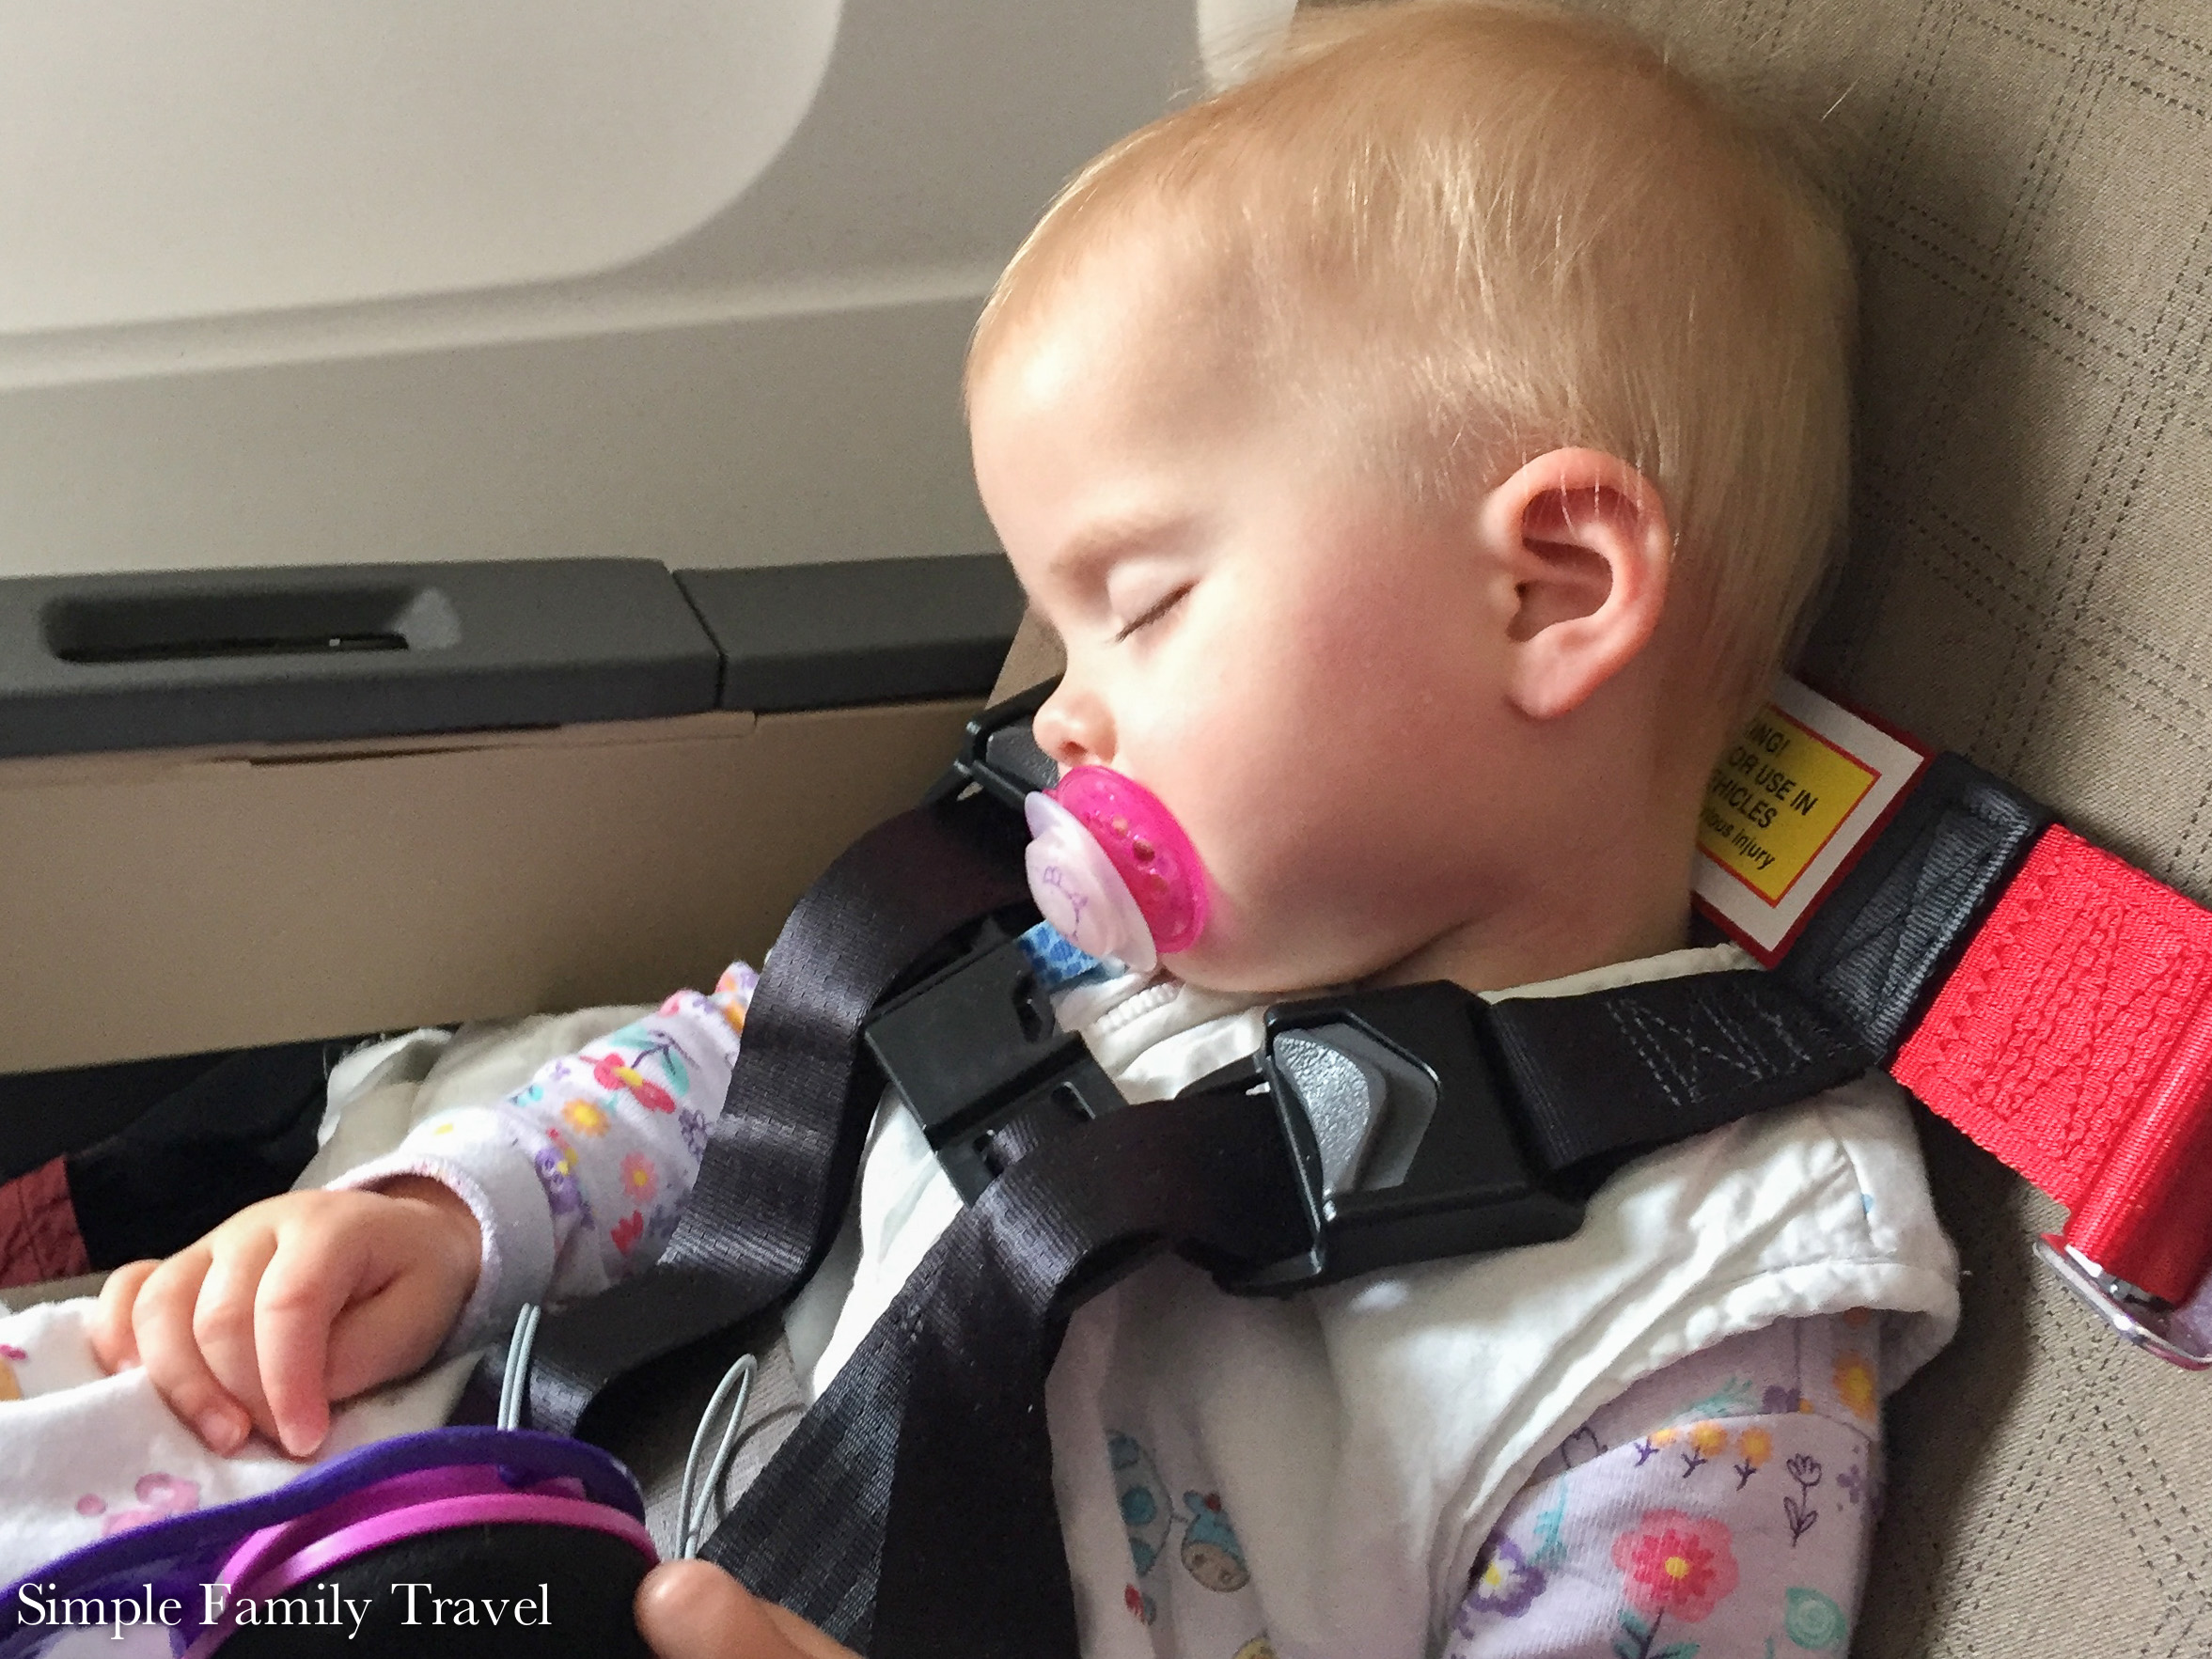 Getting them to sleep when traveling can be nerve wracking.